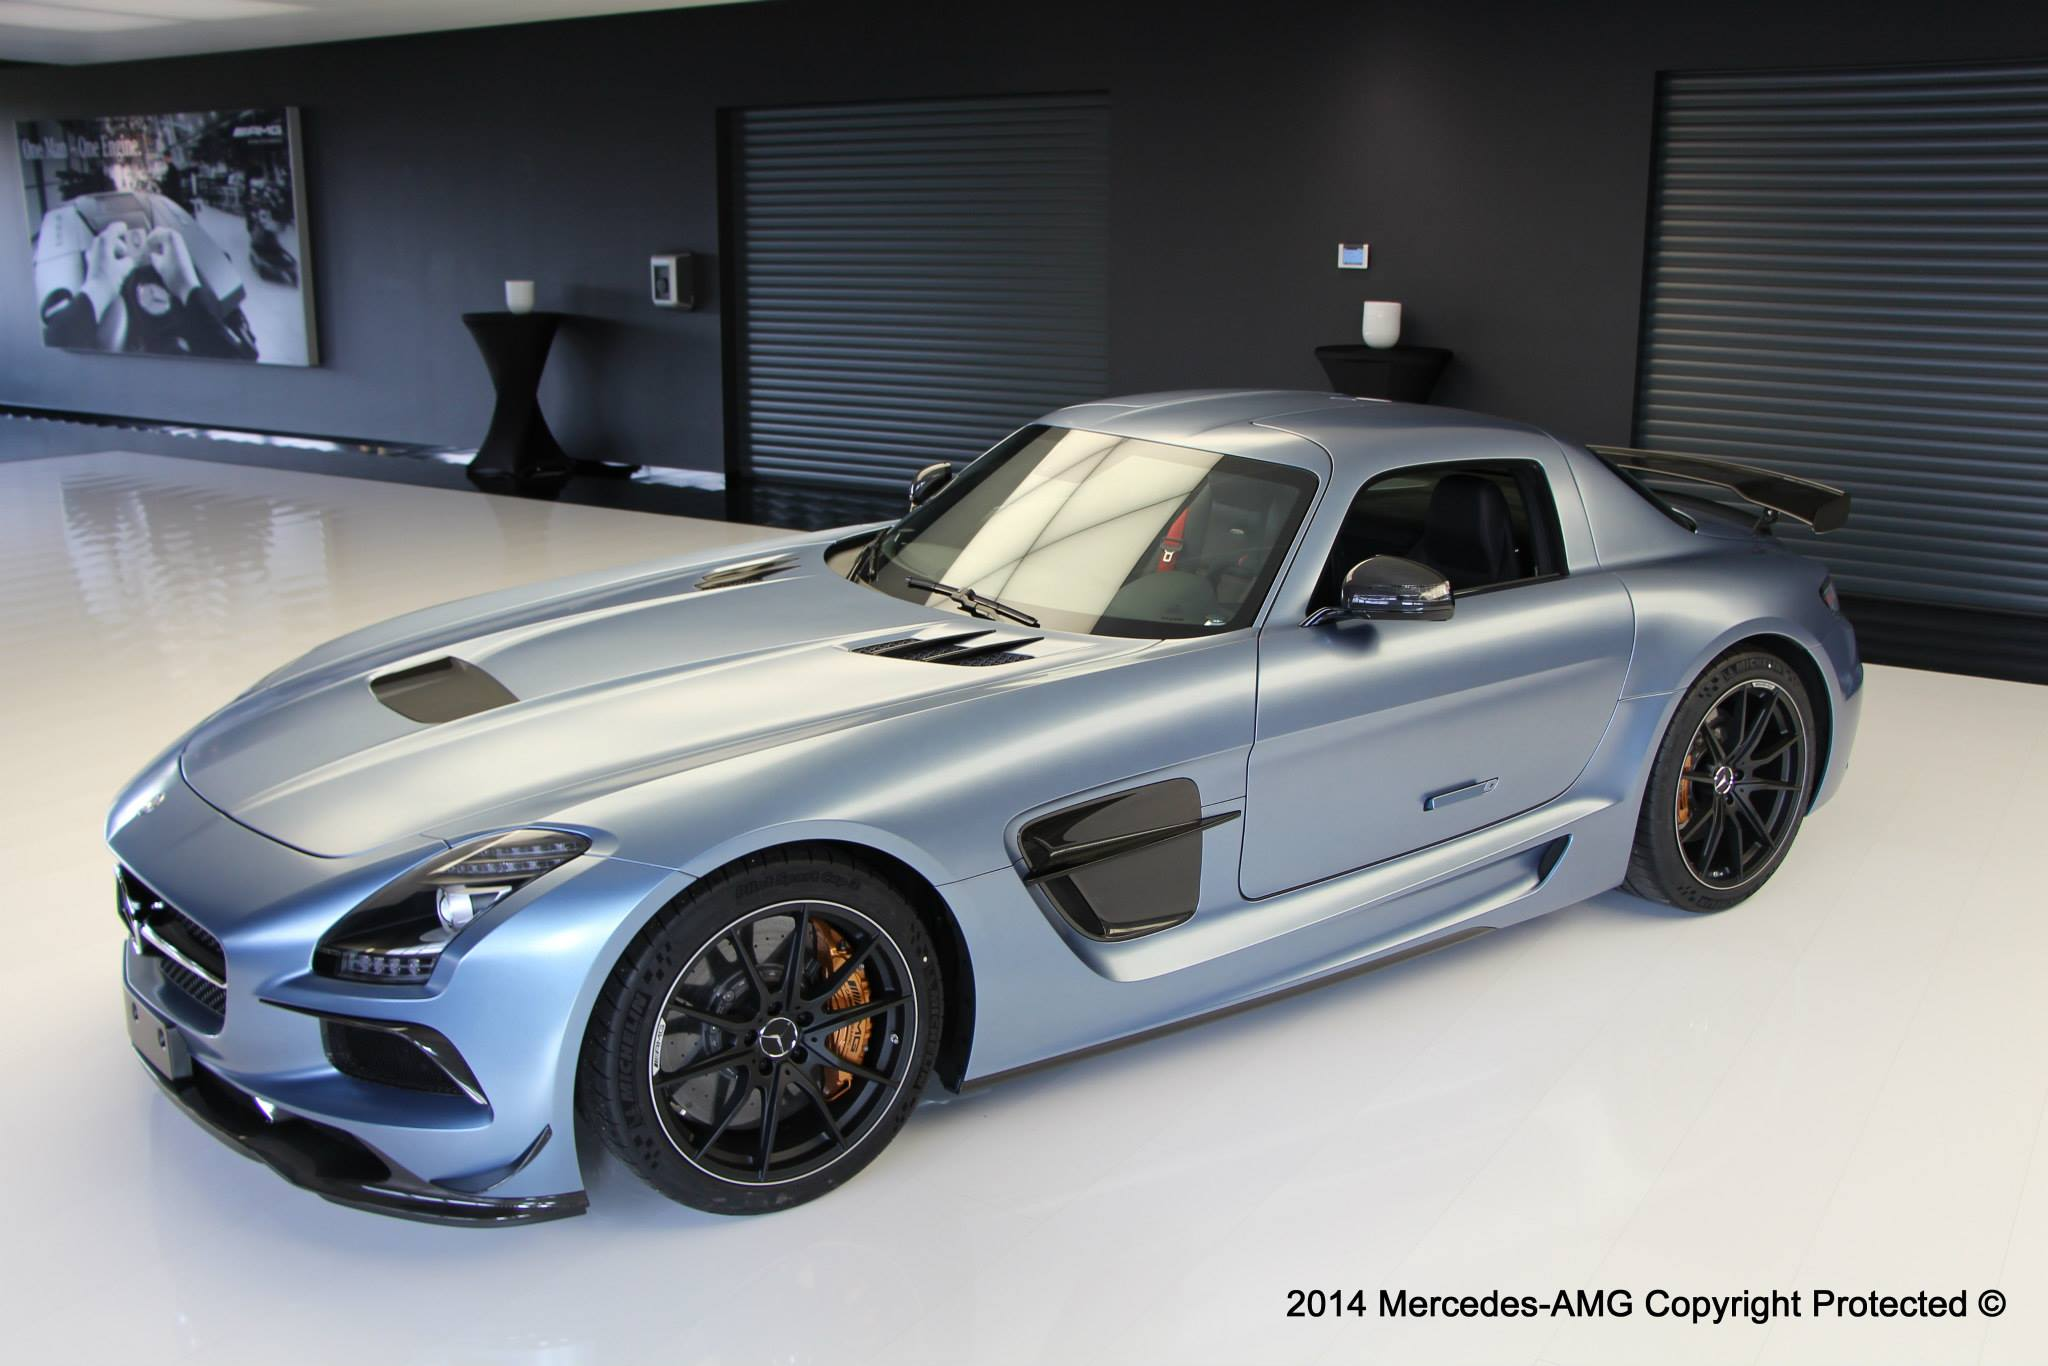 Mercedes SLS AMG Black Series in Yosemite Blue